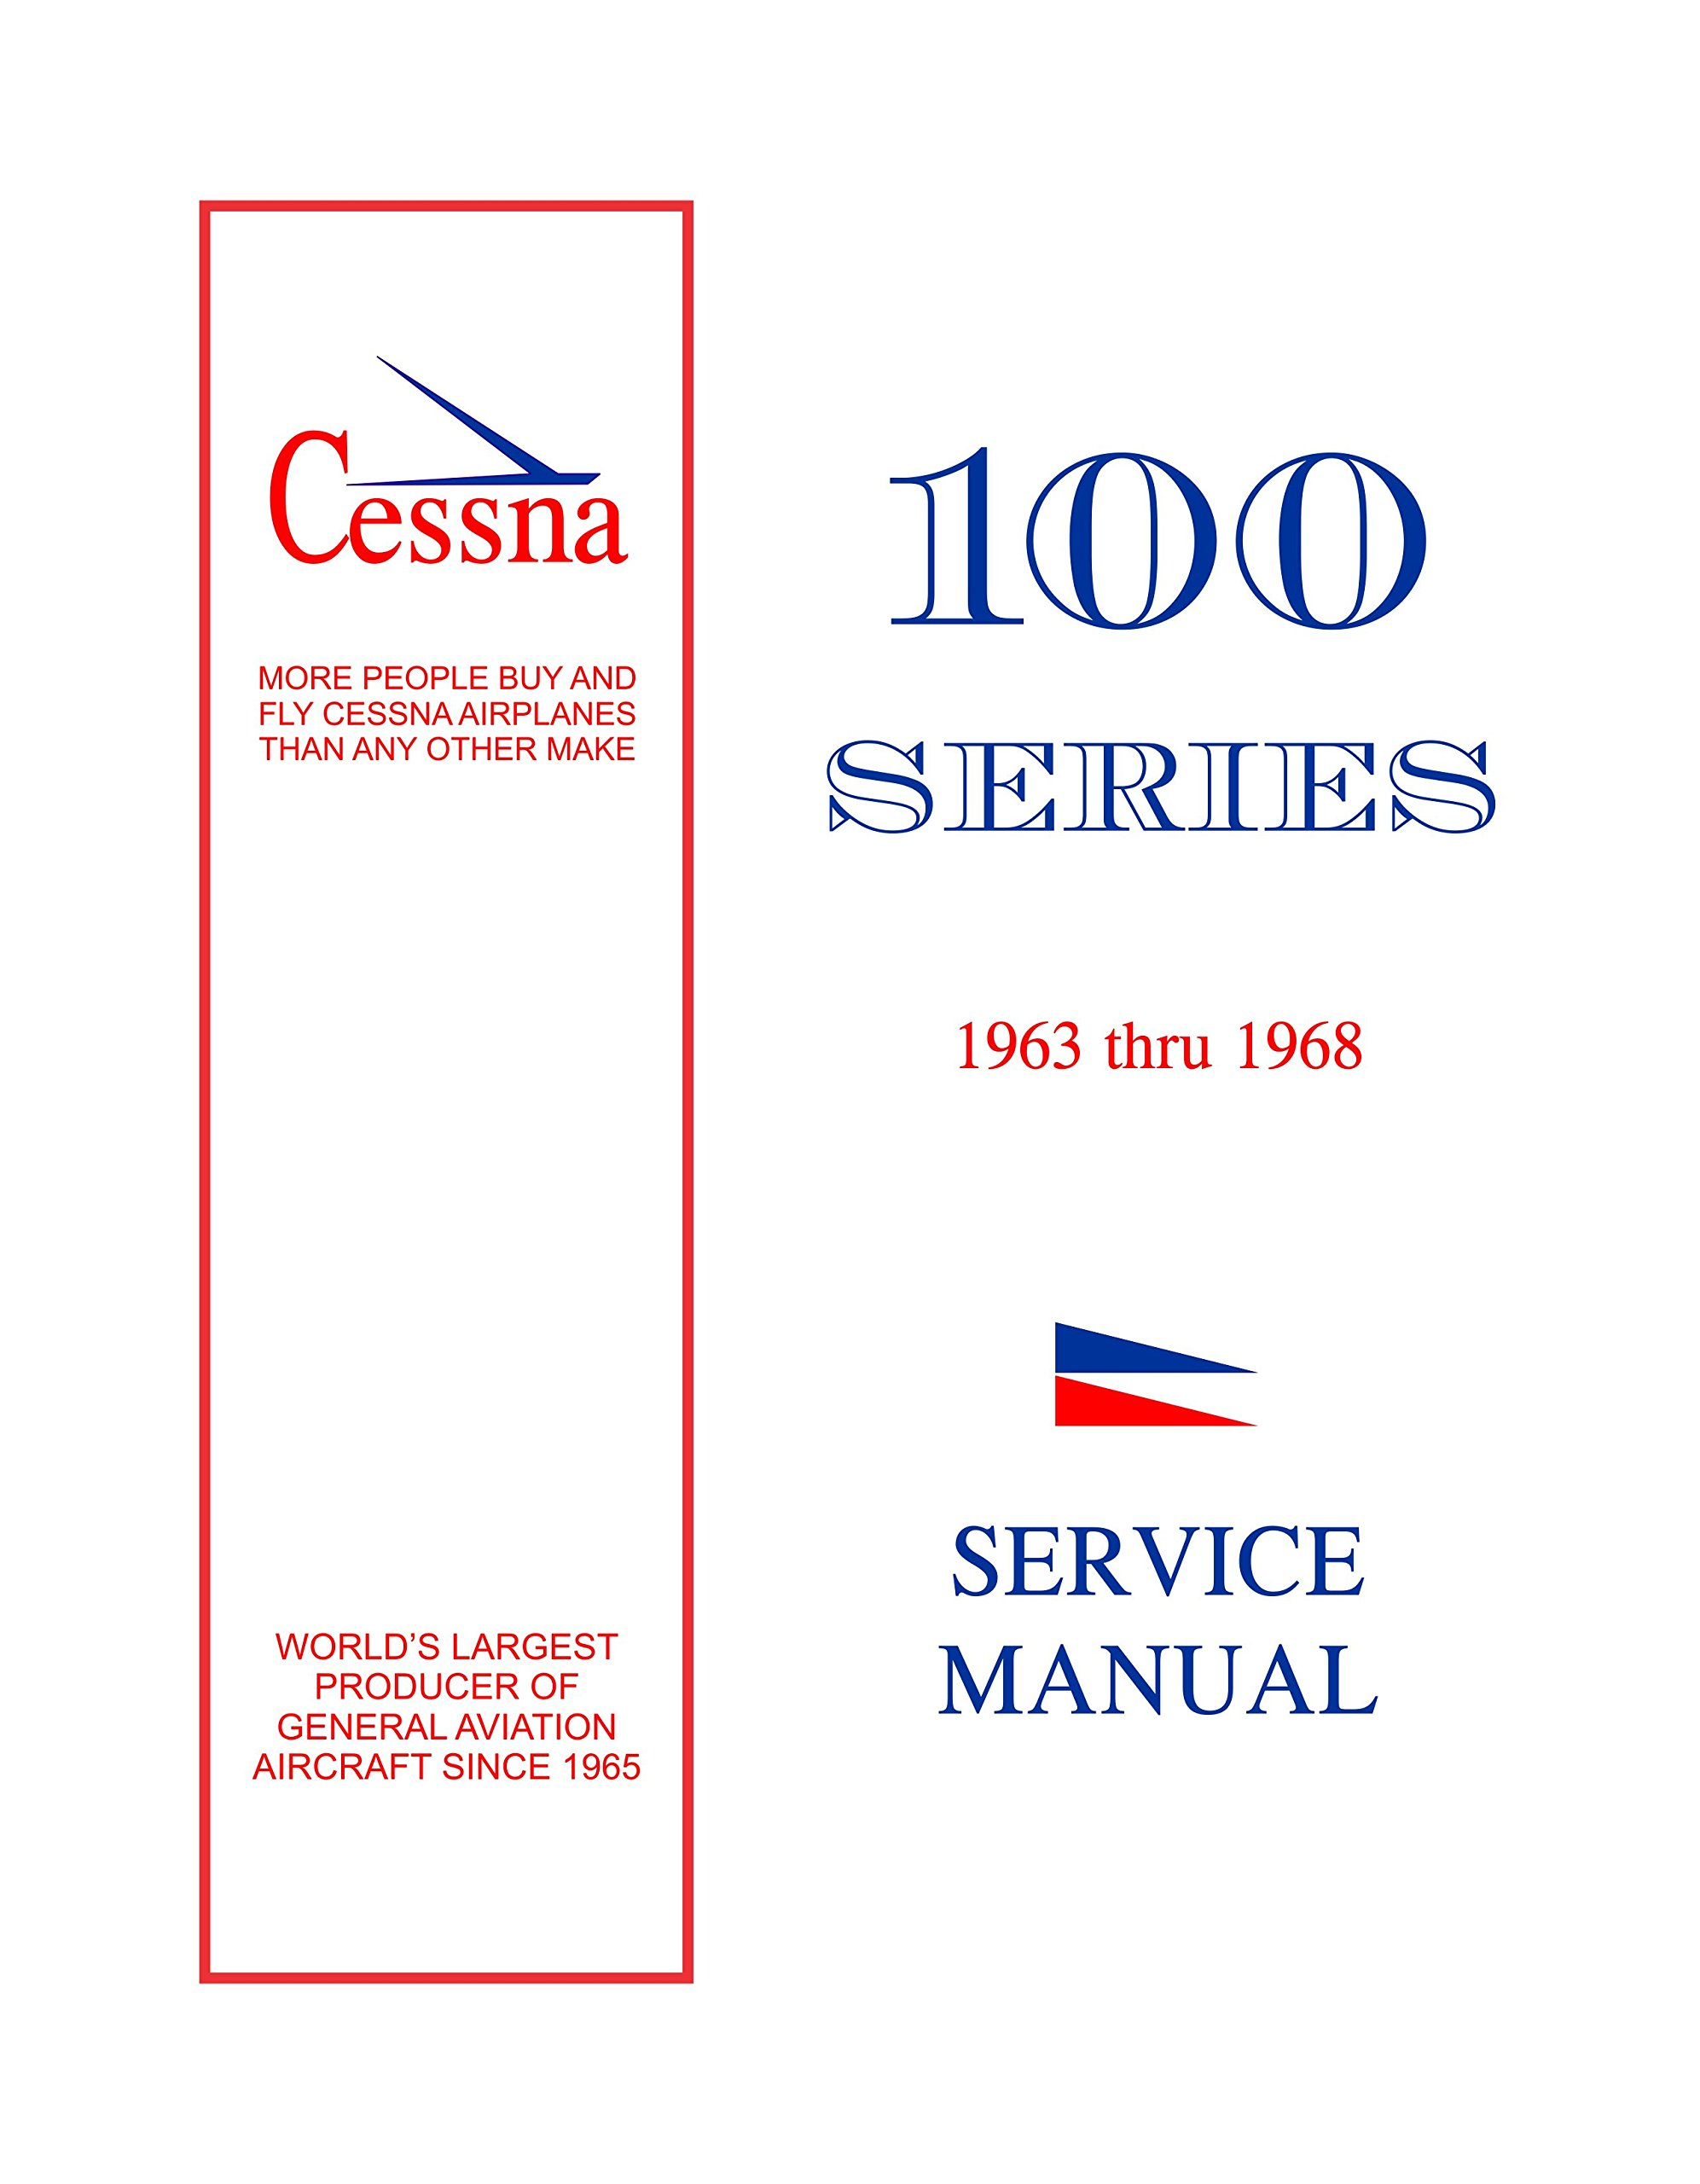 Keeway focus-matrix 50cc service manual.pdf